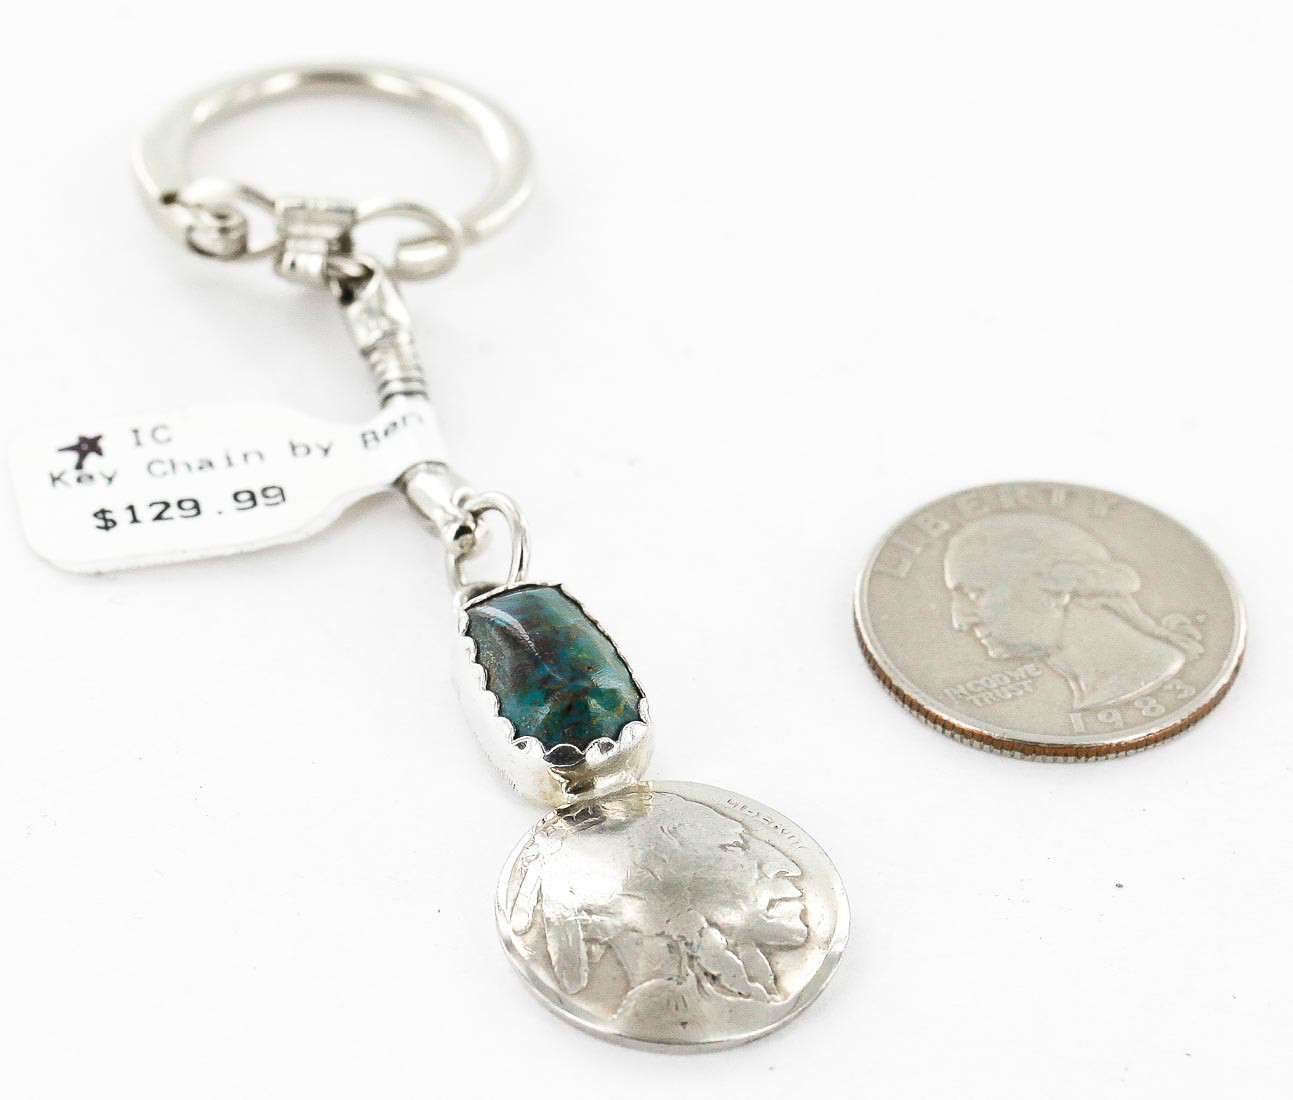 Vintage Style OLD Buffalo Coin Certified Authentic Navajo .925 Sterling Silver Natural Turquoise Native American Keychain 10320-4 All Products 371208513306 10320-4 (by LomaSiiva)